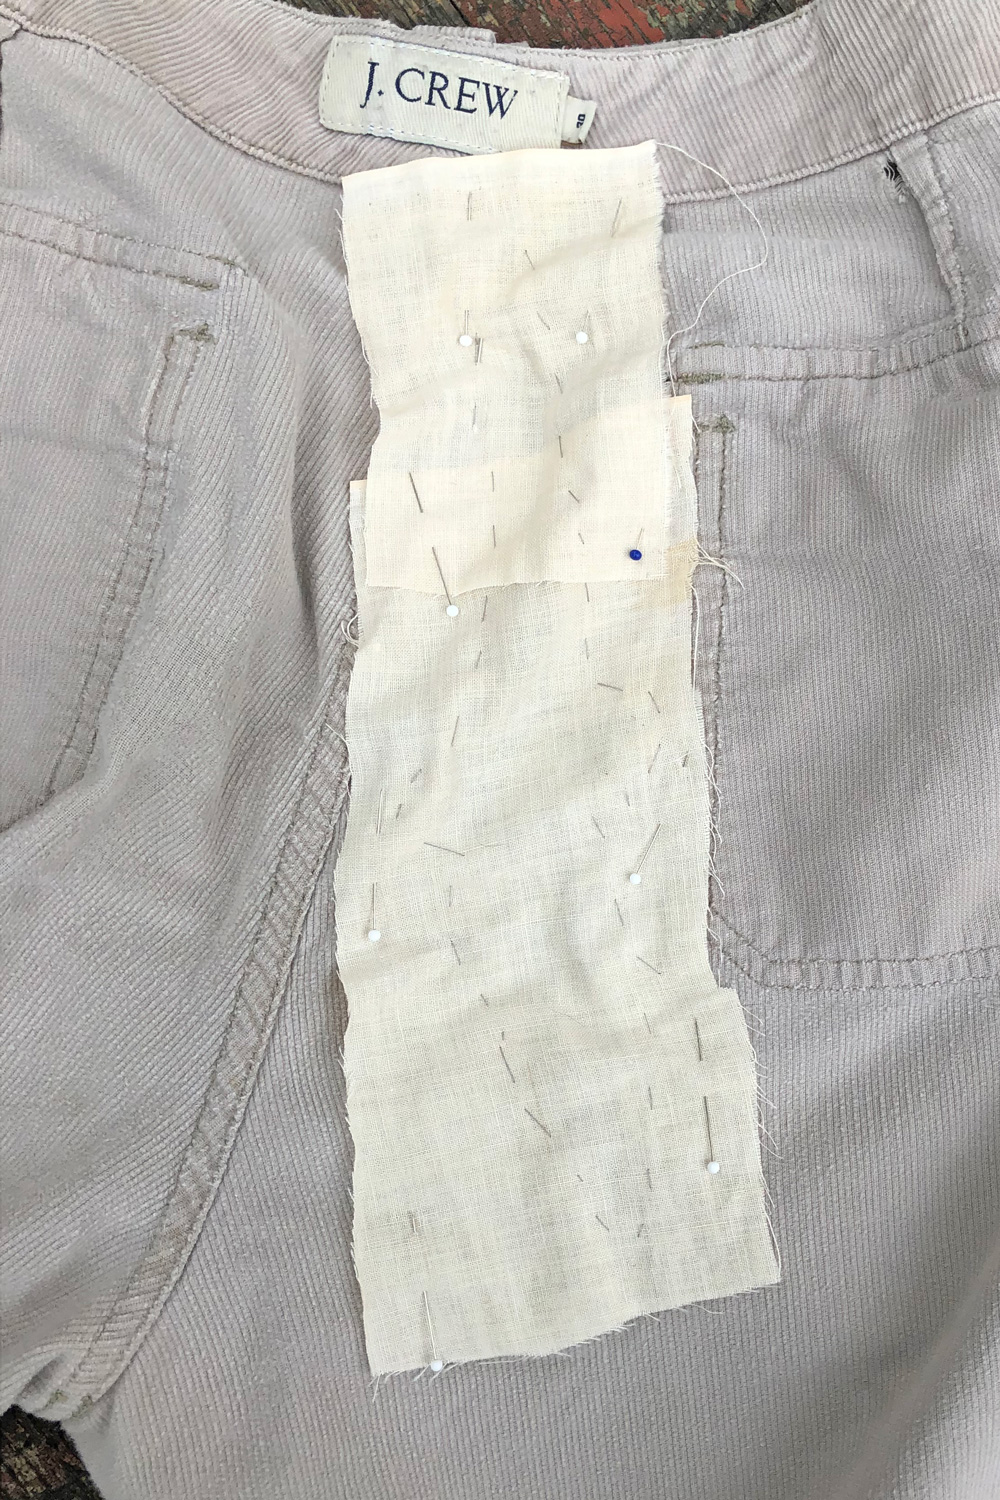 fabric pinned and basted over tear in shorts - inside out